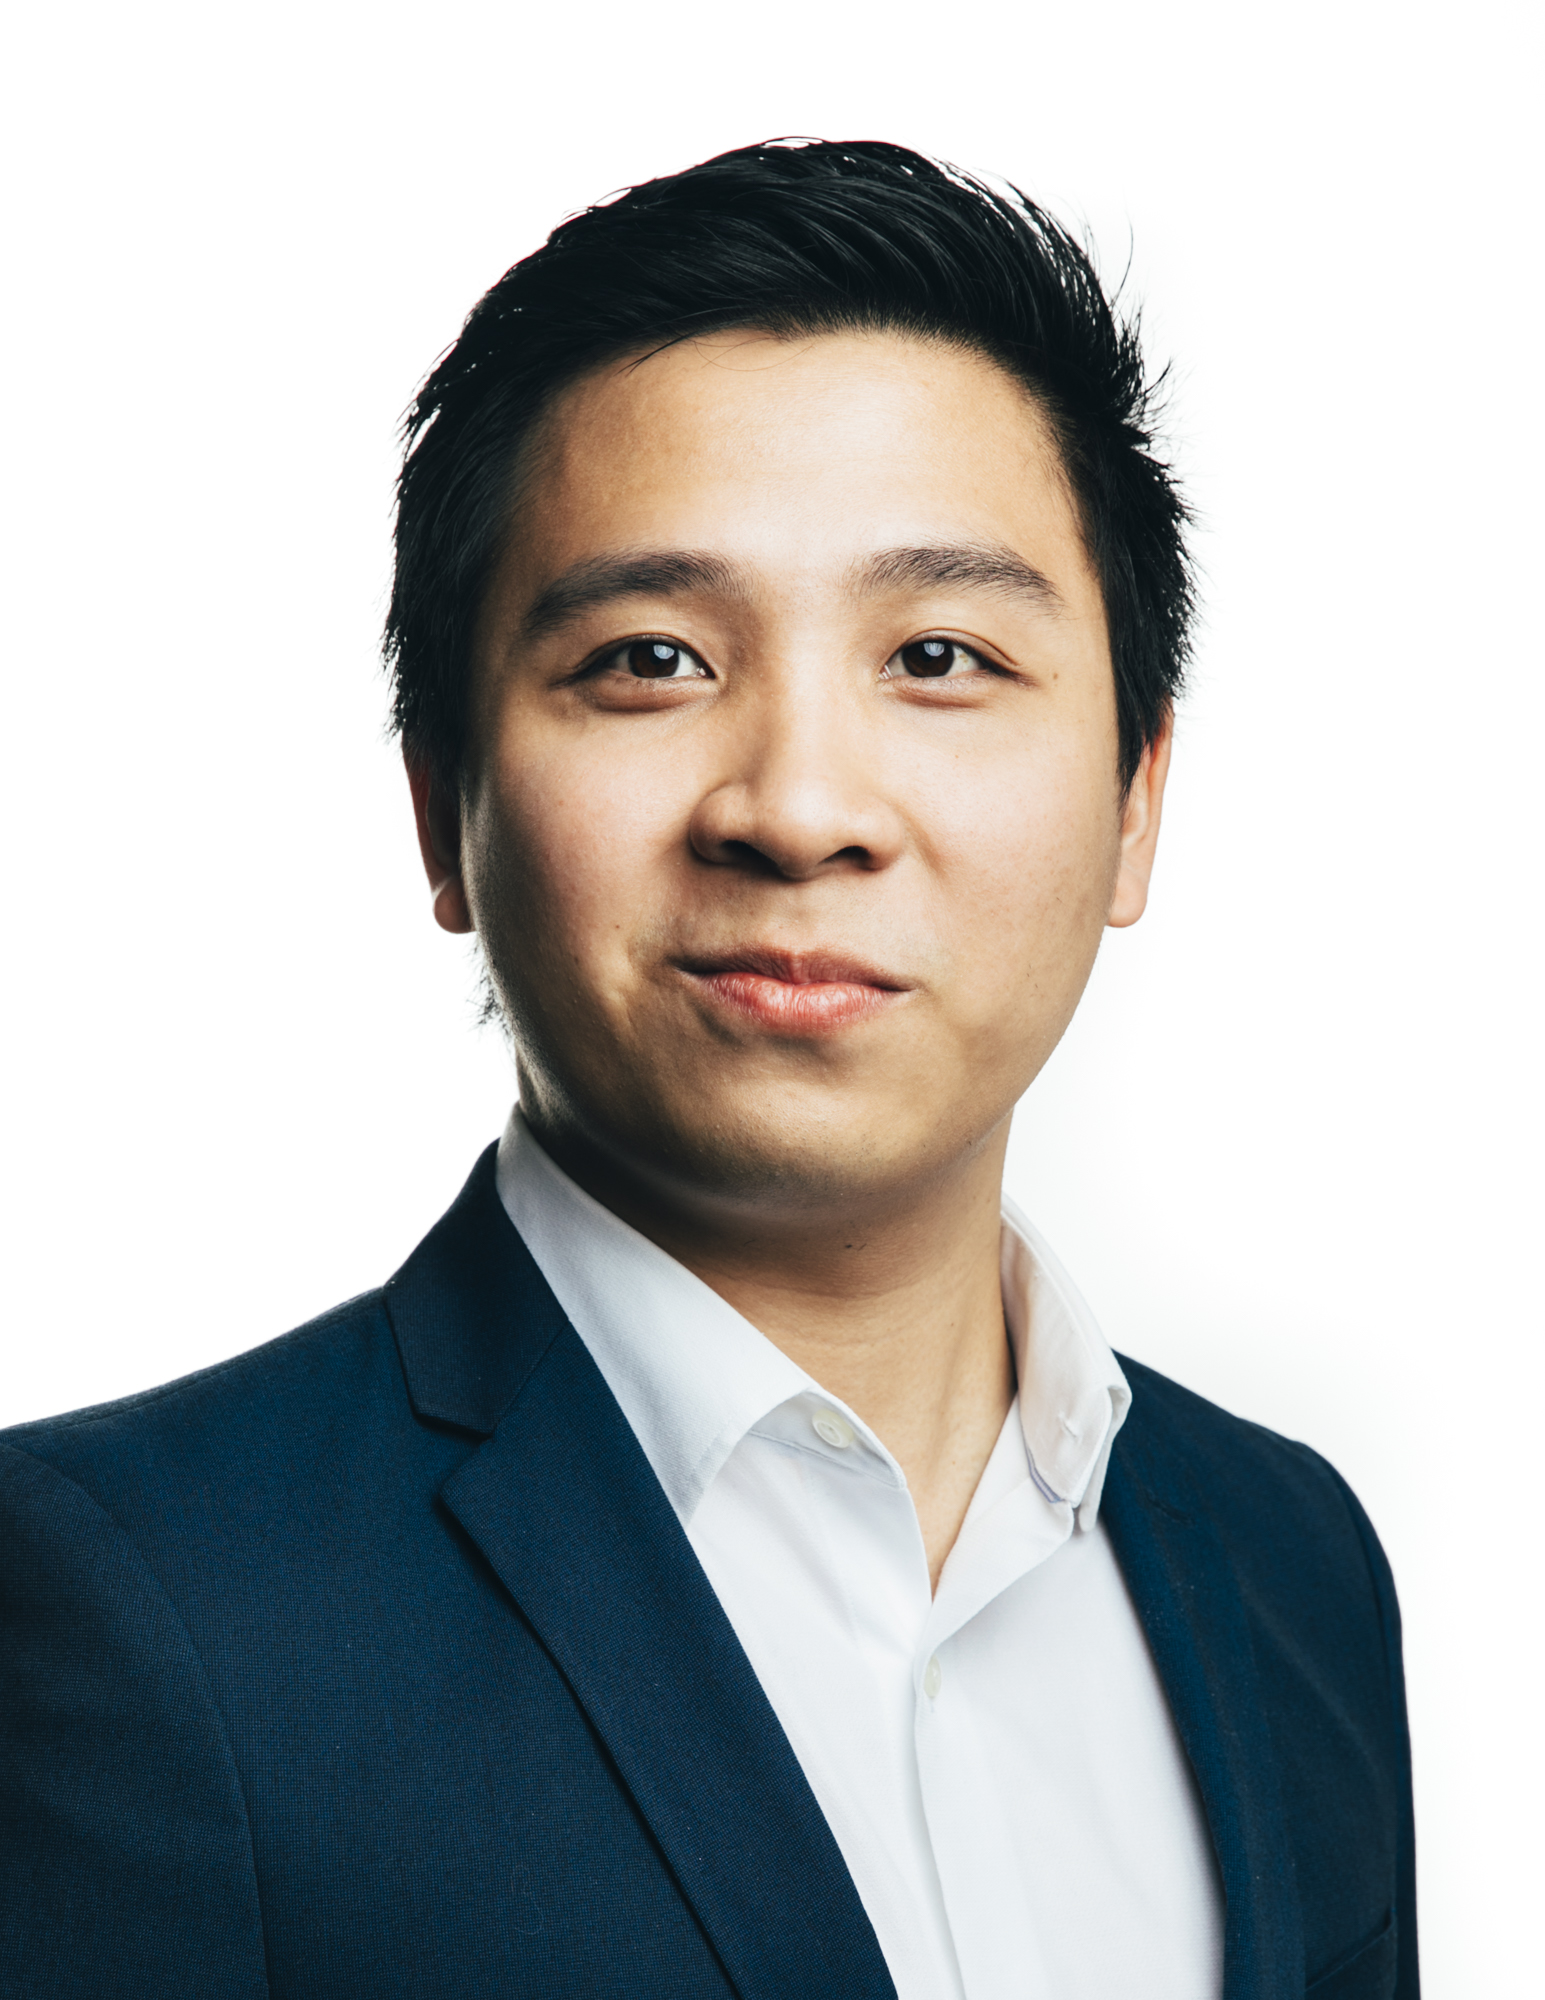 Maurice Ang - Asset Management AnalystMaurice Ang joined Riaz Capital in February 2019 as an Asset Management Analyst overseeing existing stabilized multifamily assets and supporting the Chief Investment Officer. He is responsible for implementation of operating plans and maximizing asset values. Maurice was a summer associate consultant at Berkeley Research Group, where he was staffed on a major intellectual property case between two Fortune 500 companies. Originally from an analytics background, Maurice used to conduct econometrical regression analysis and data analysis to provide a solid foundation in formulating business solutions. However, in search for a more tangible field, Maurice was drawn to real estate due to the multifaceted disciplines required for a project. Riaz Capital's mission to serve the